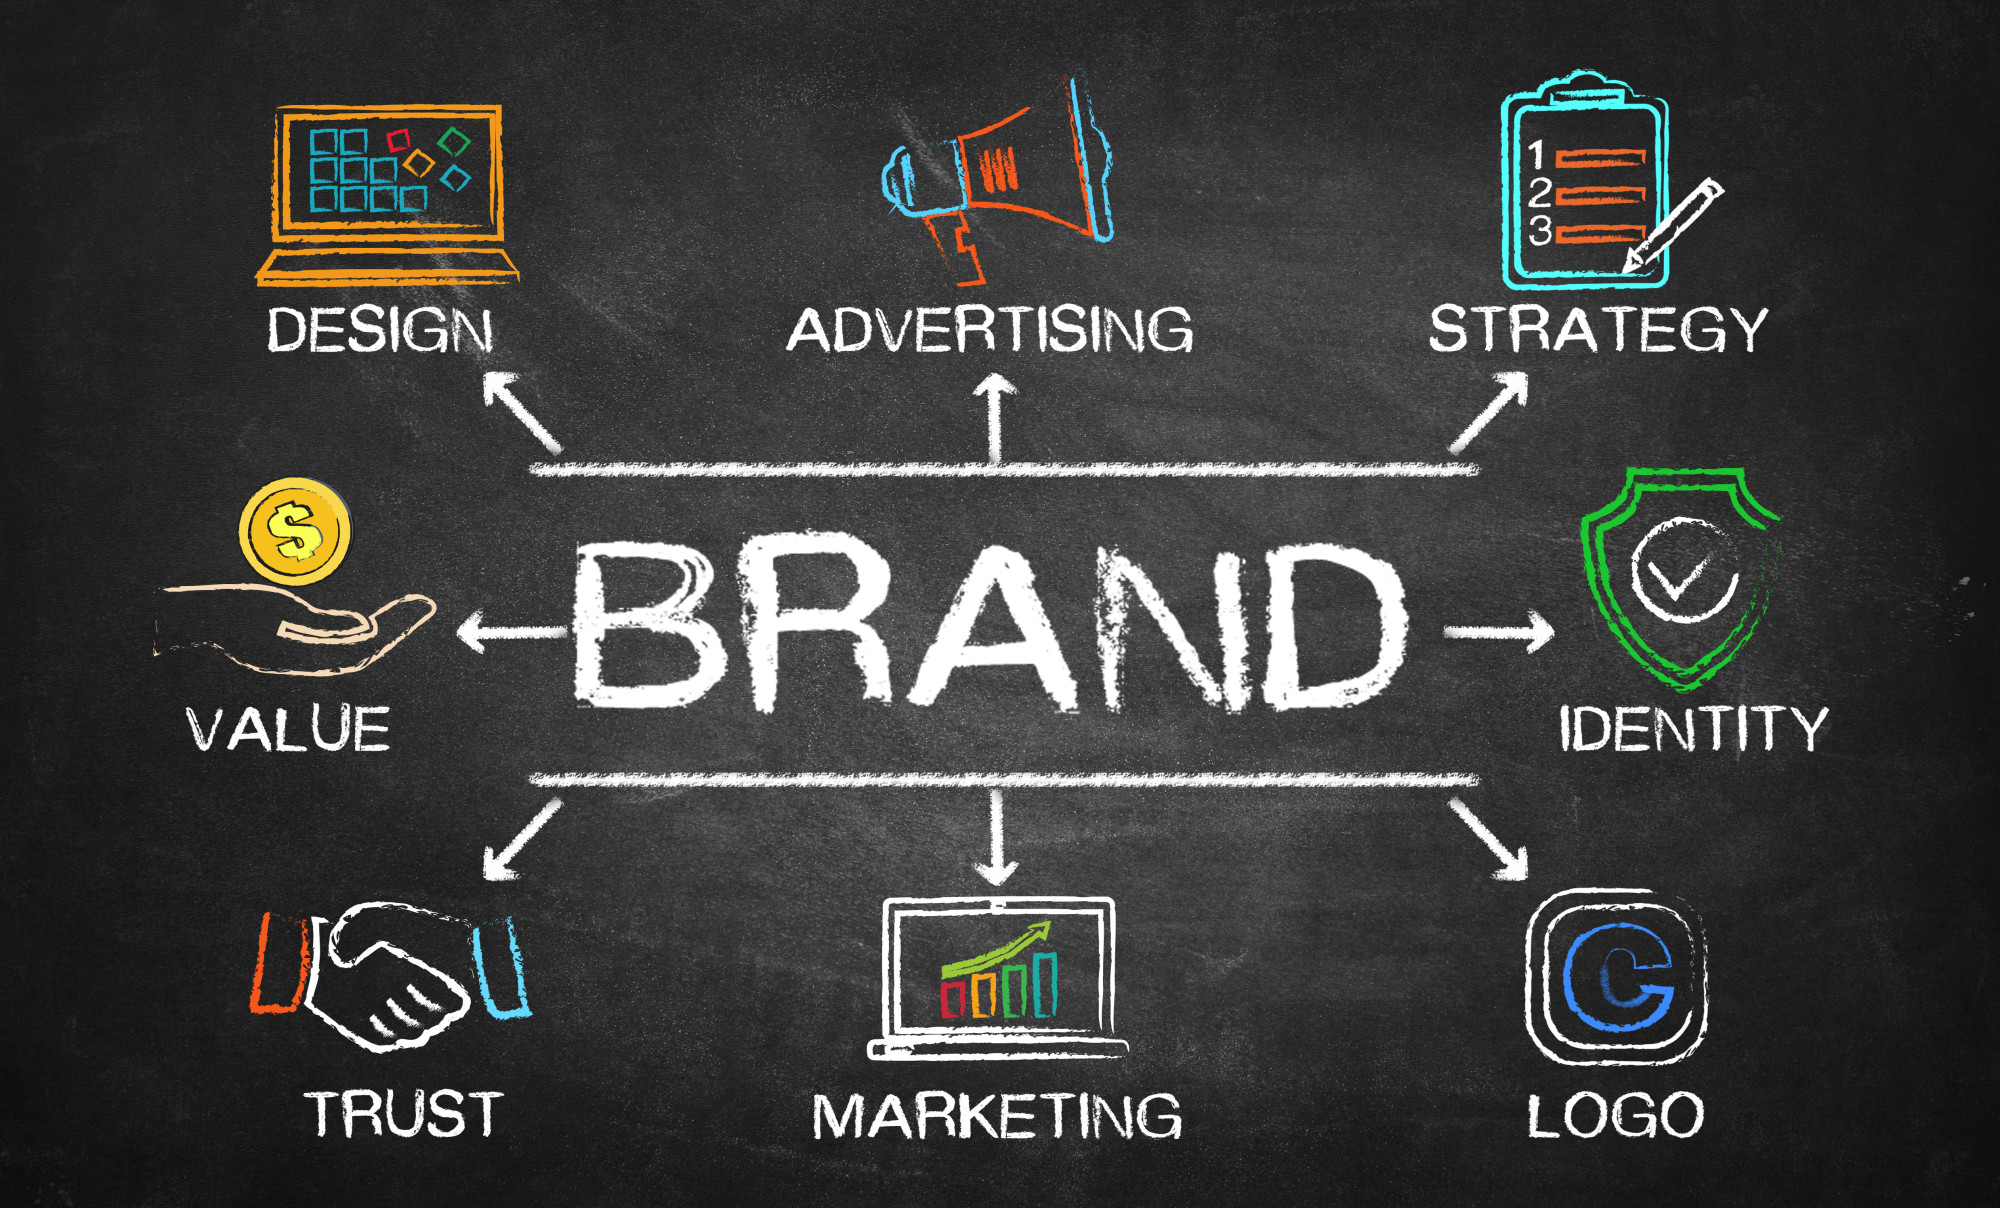 Brand Building Through SEO: 5 Ways to Do It Right